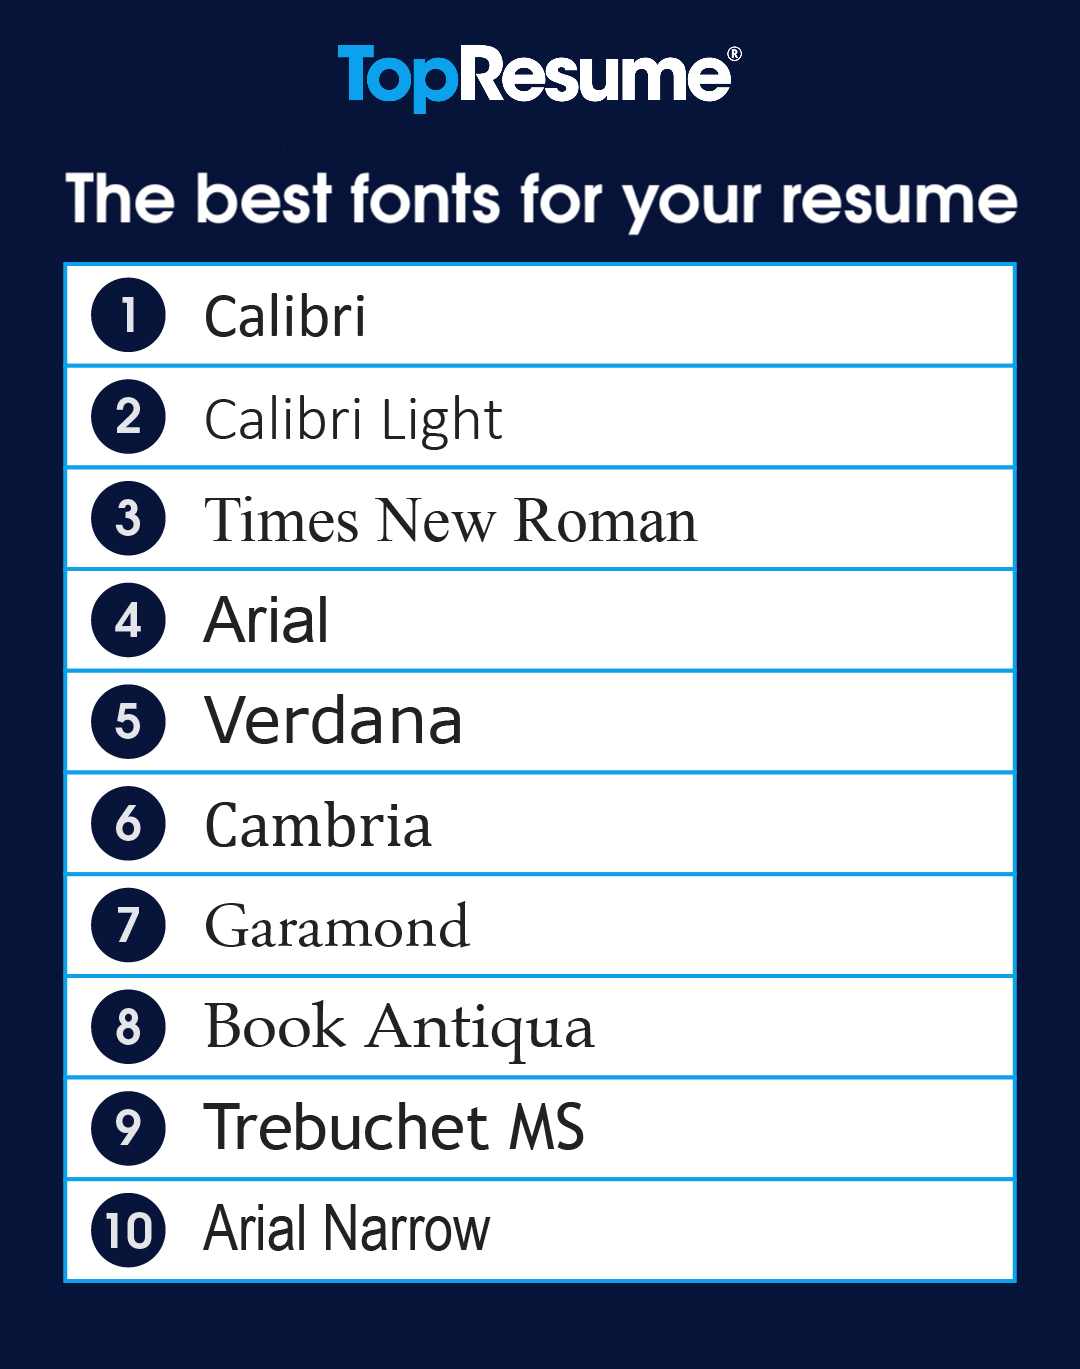 Below, we'll dive in deeper with why these 10 fonts are safe choices for your resume and friendly to applicant tracking systems. What Are The Best Fonts For A Resume Topresume